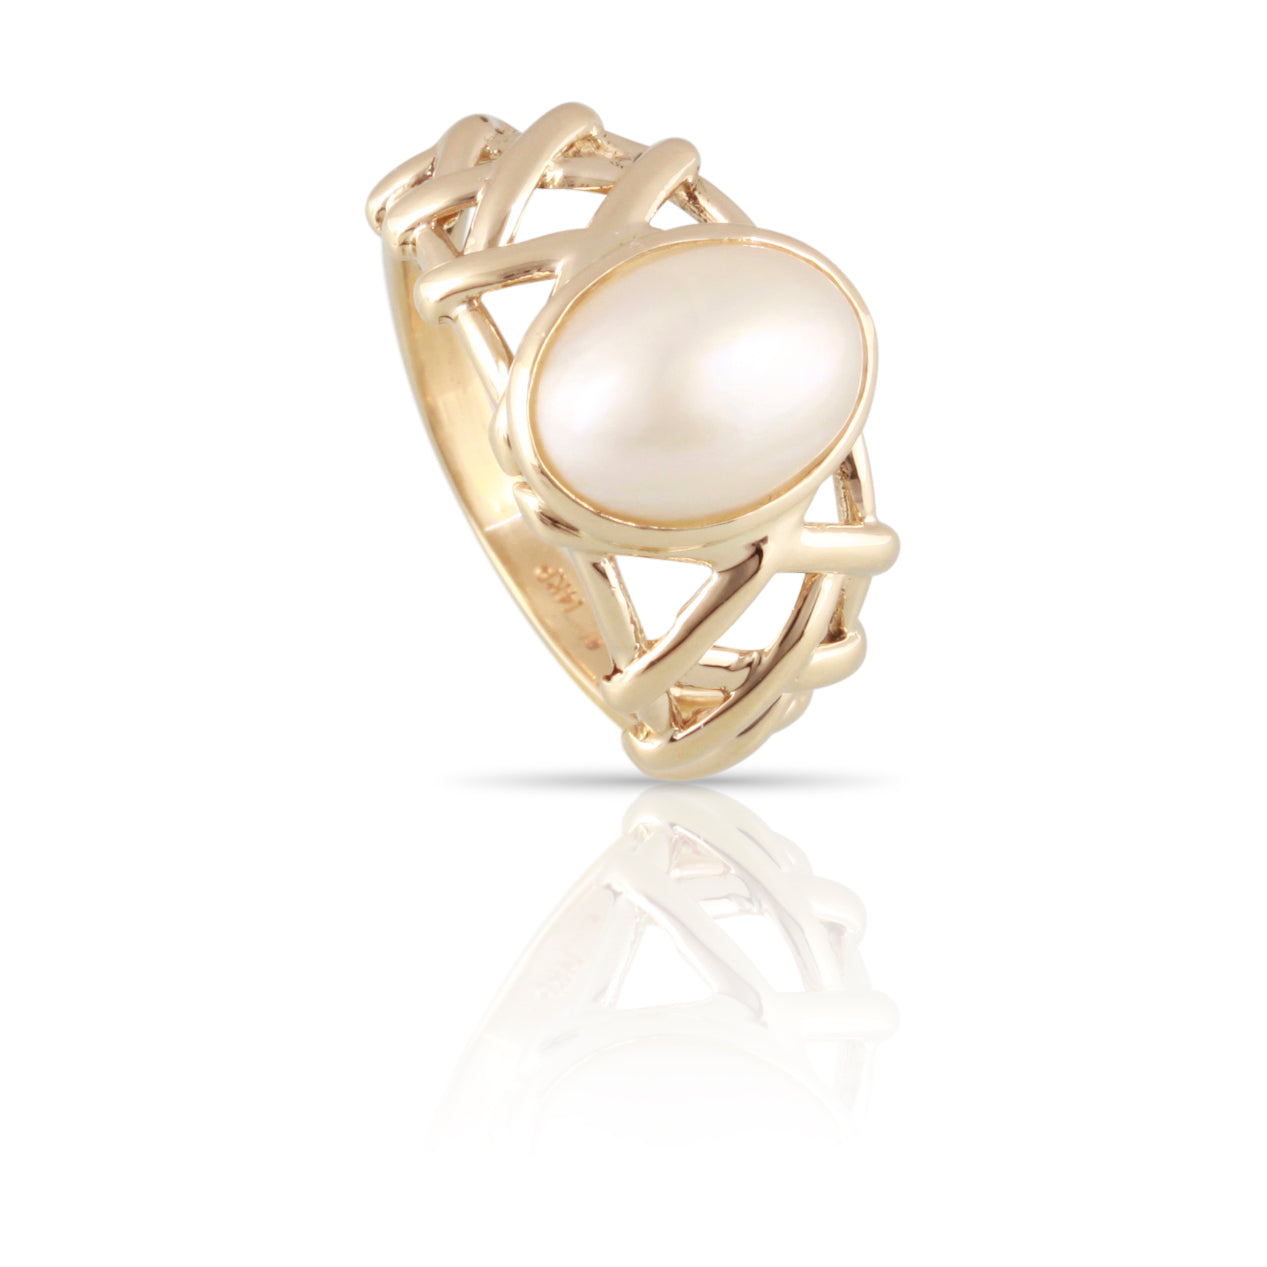 Mabe Pearl Ring | The Connor